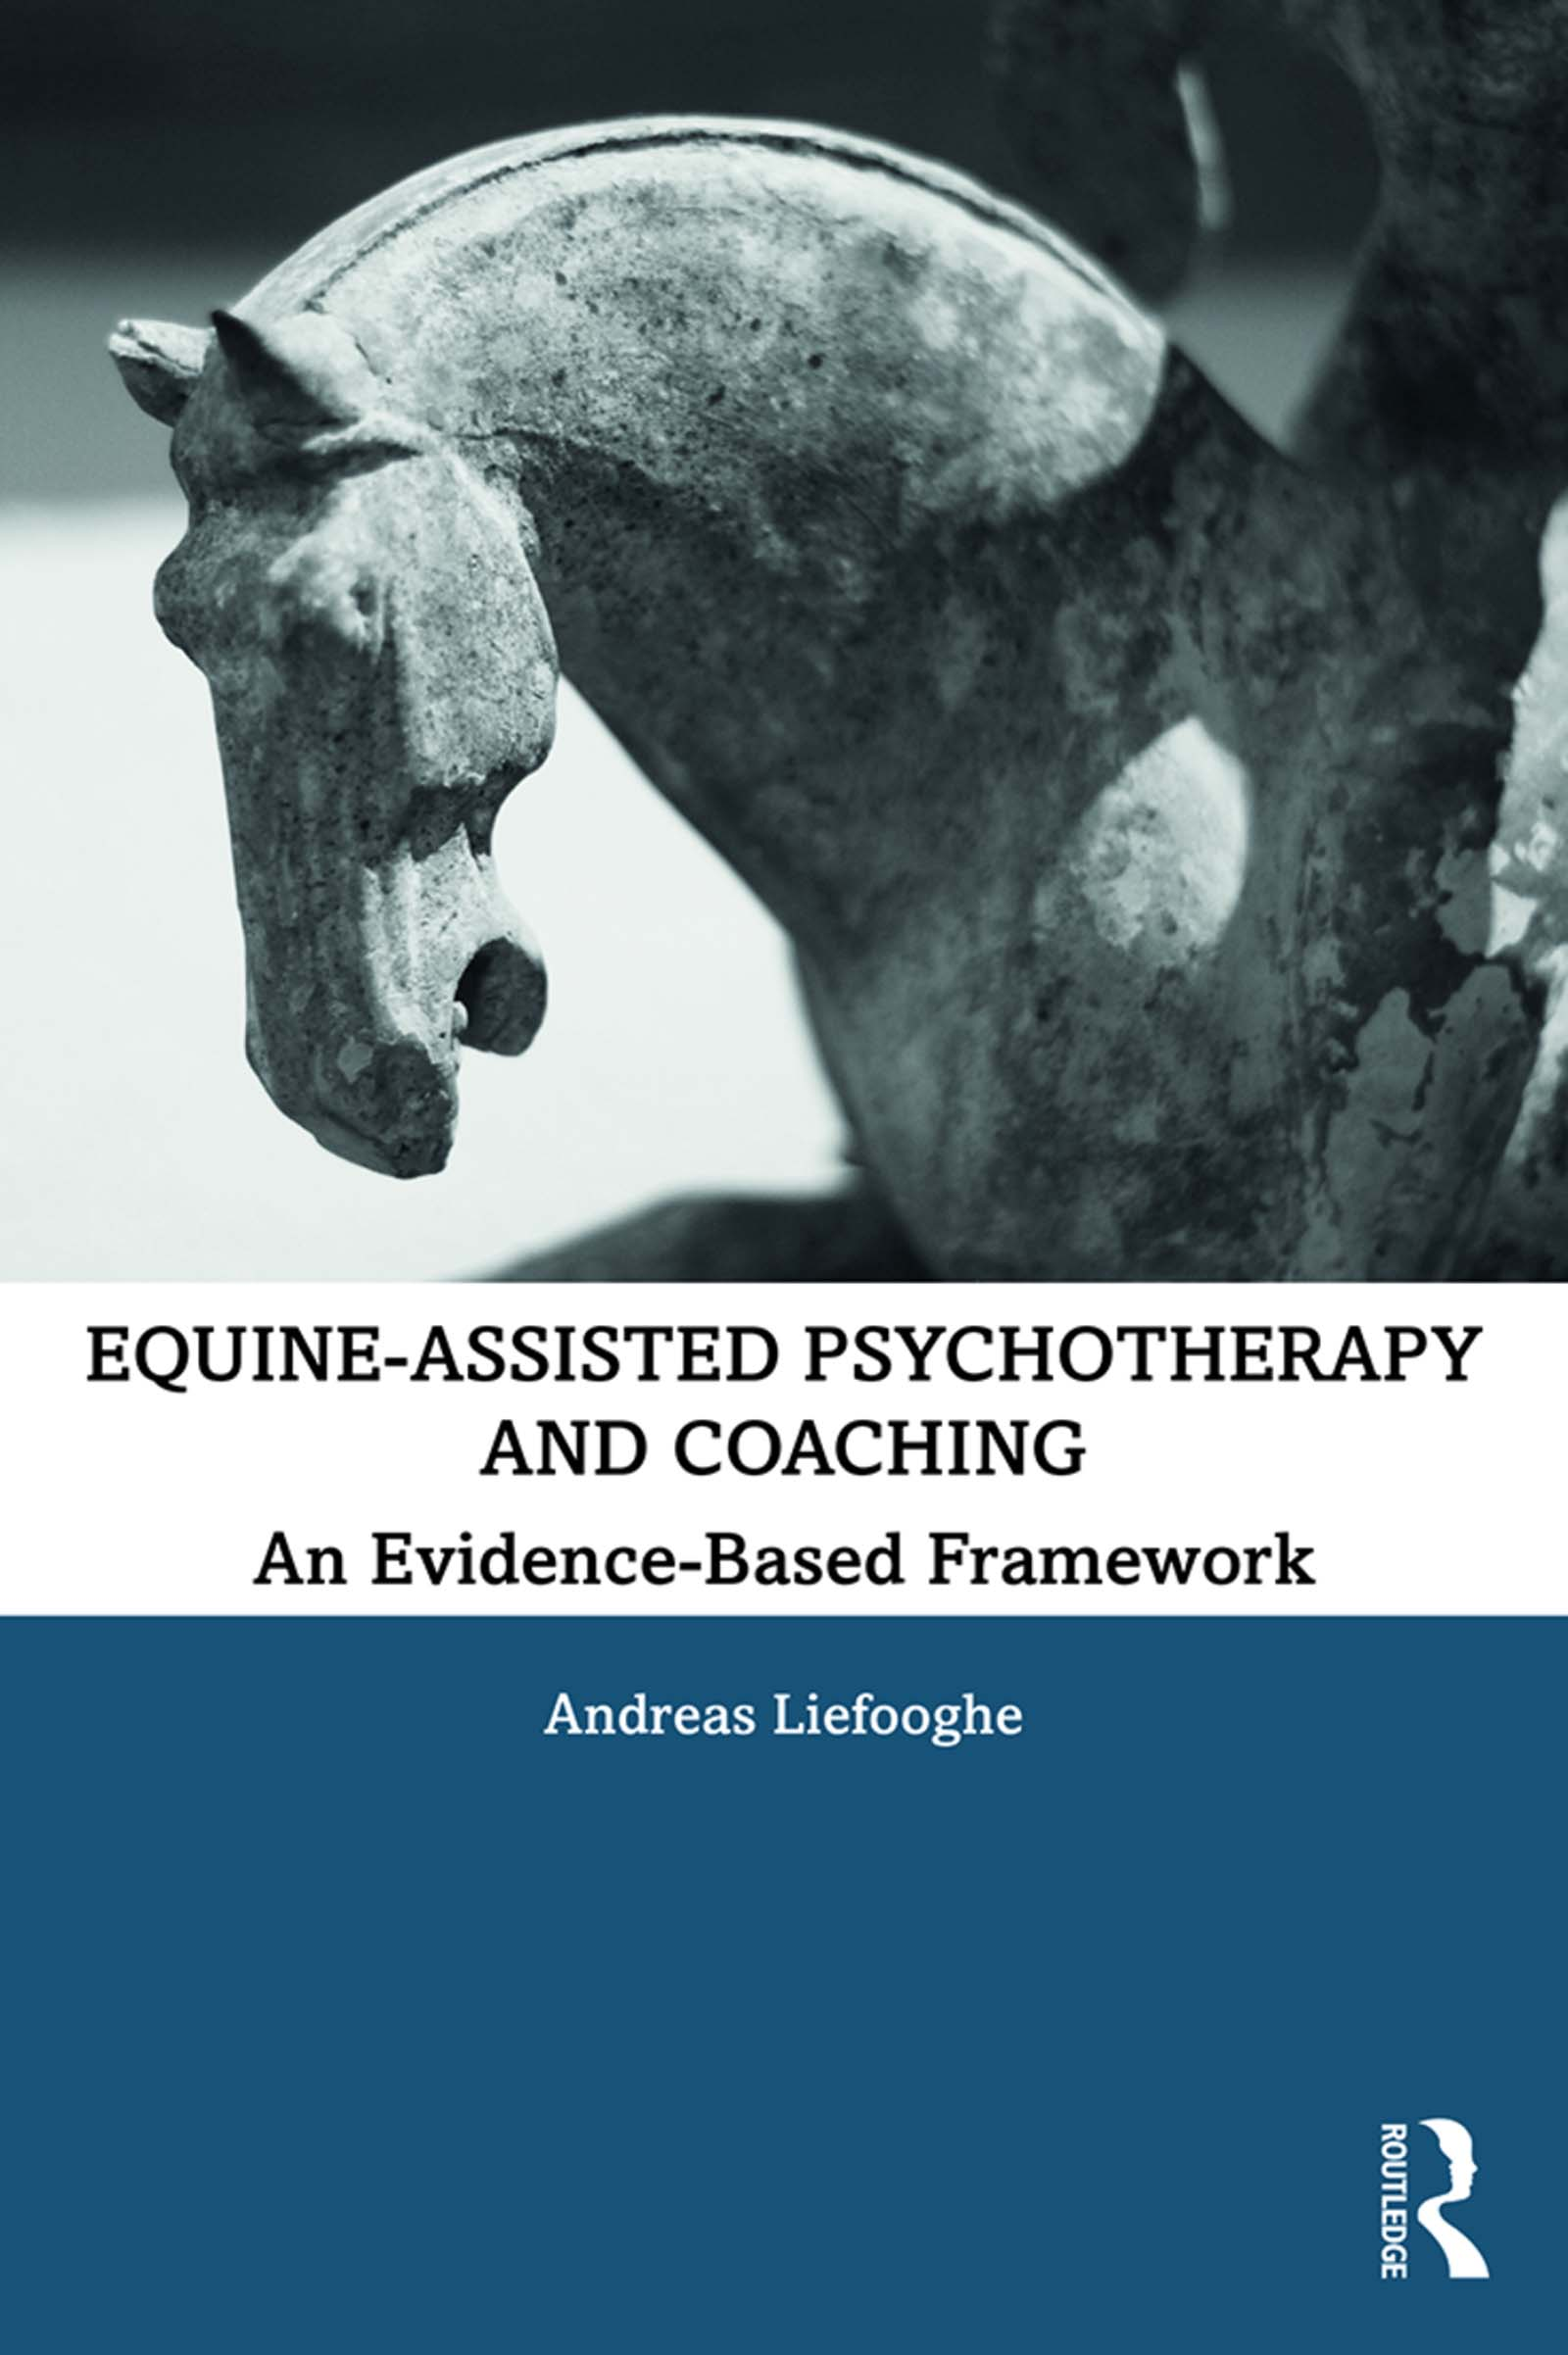 Equine-Assisted Psychotherapy and Coaching